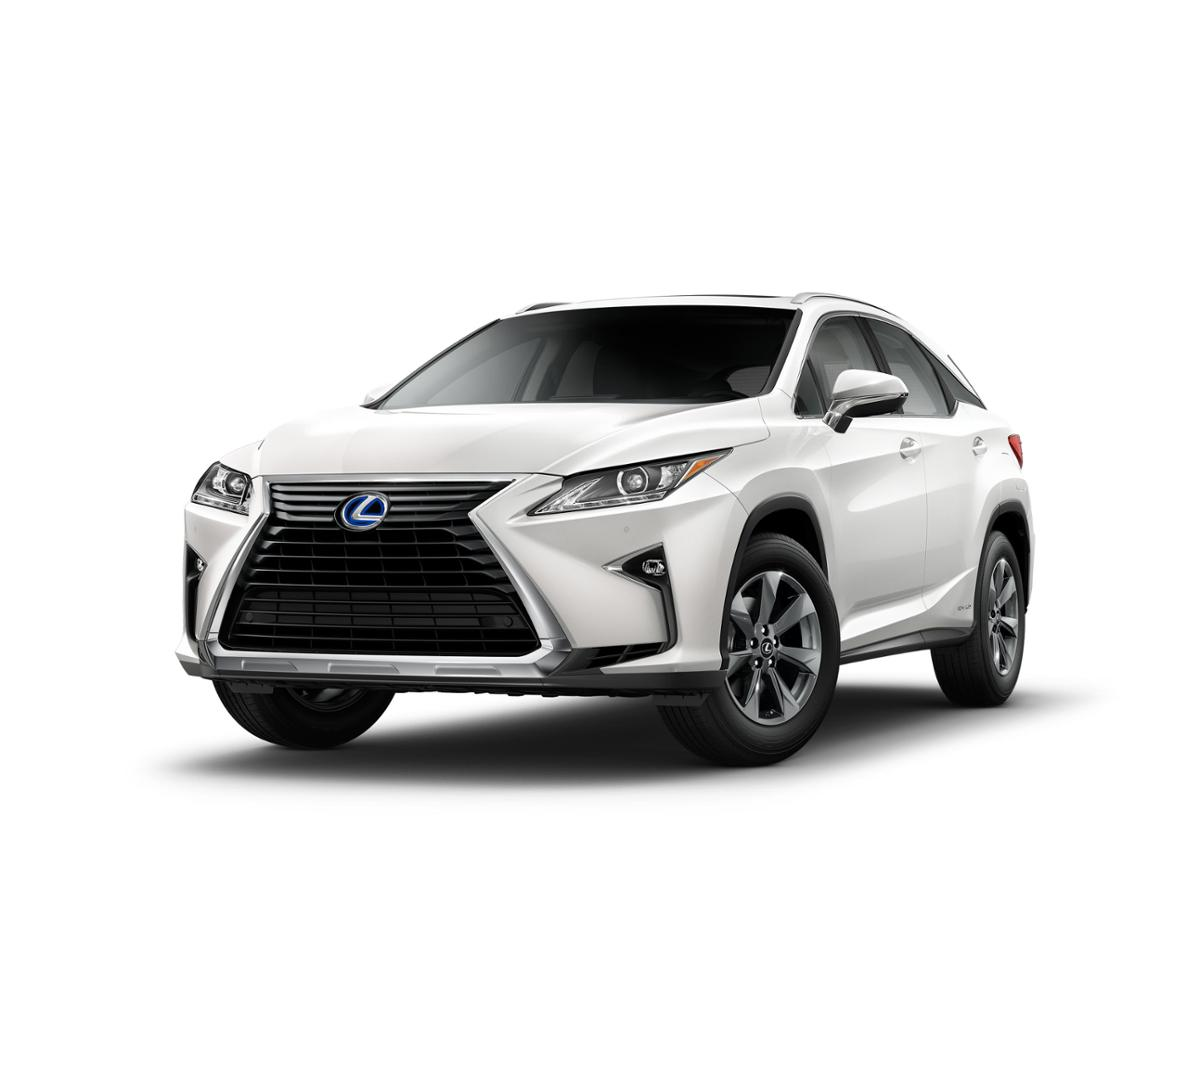 2019 Lexus RX 450h Vehicle Photo in Mission Viejo, CA 92692